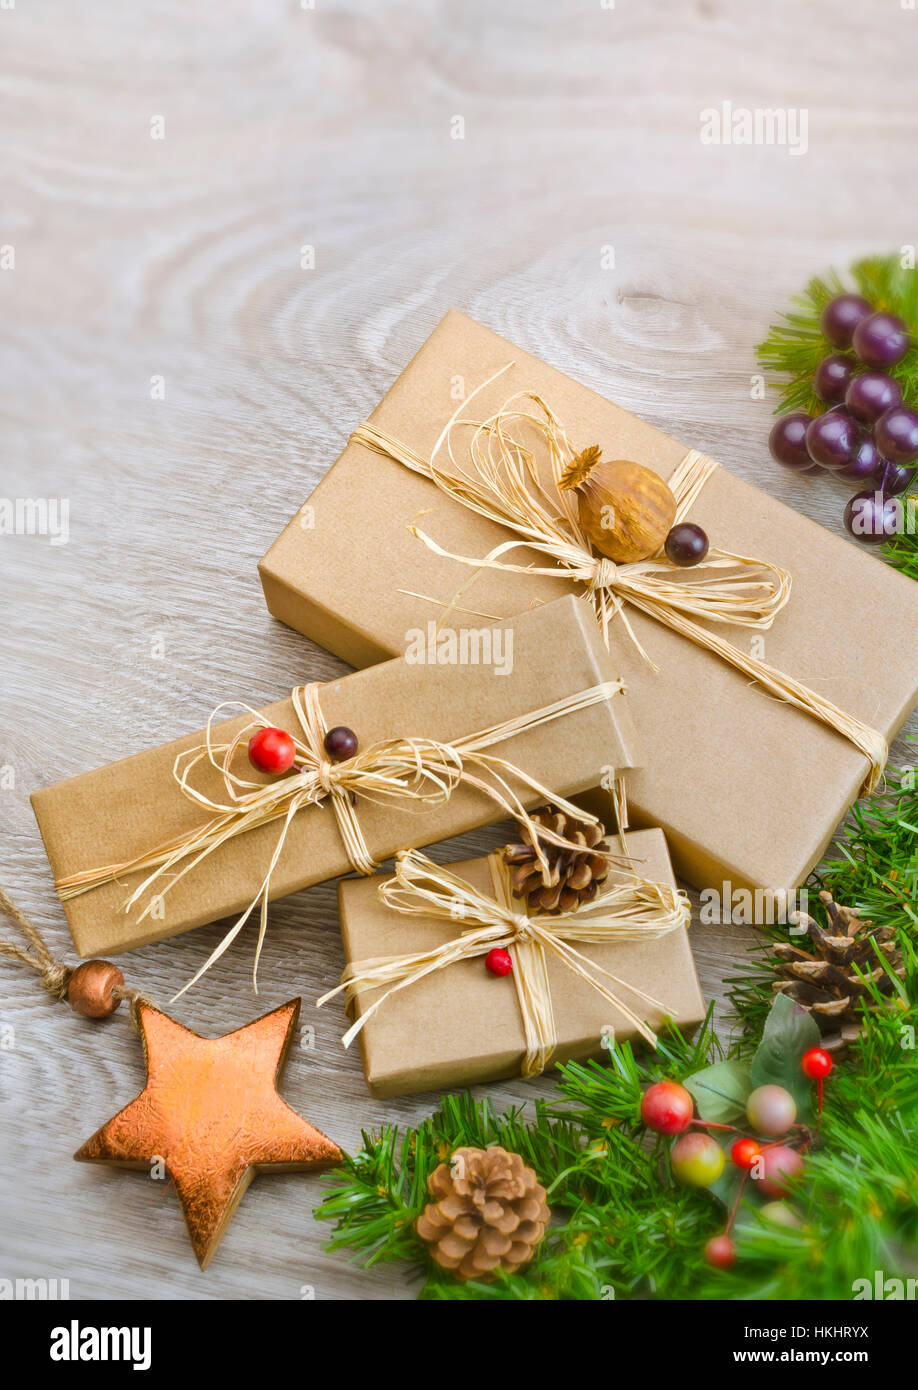 Contemporary wrapped presents on wooden background with space at top for copy - Stock Image